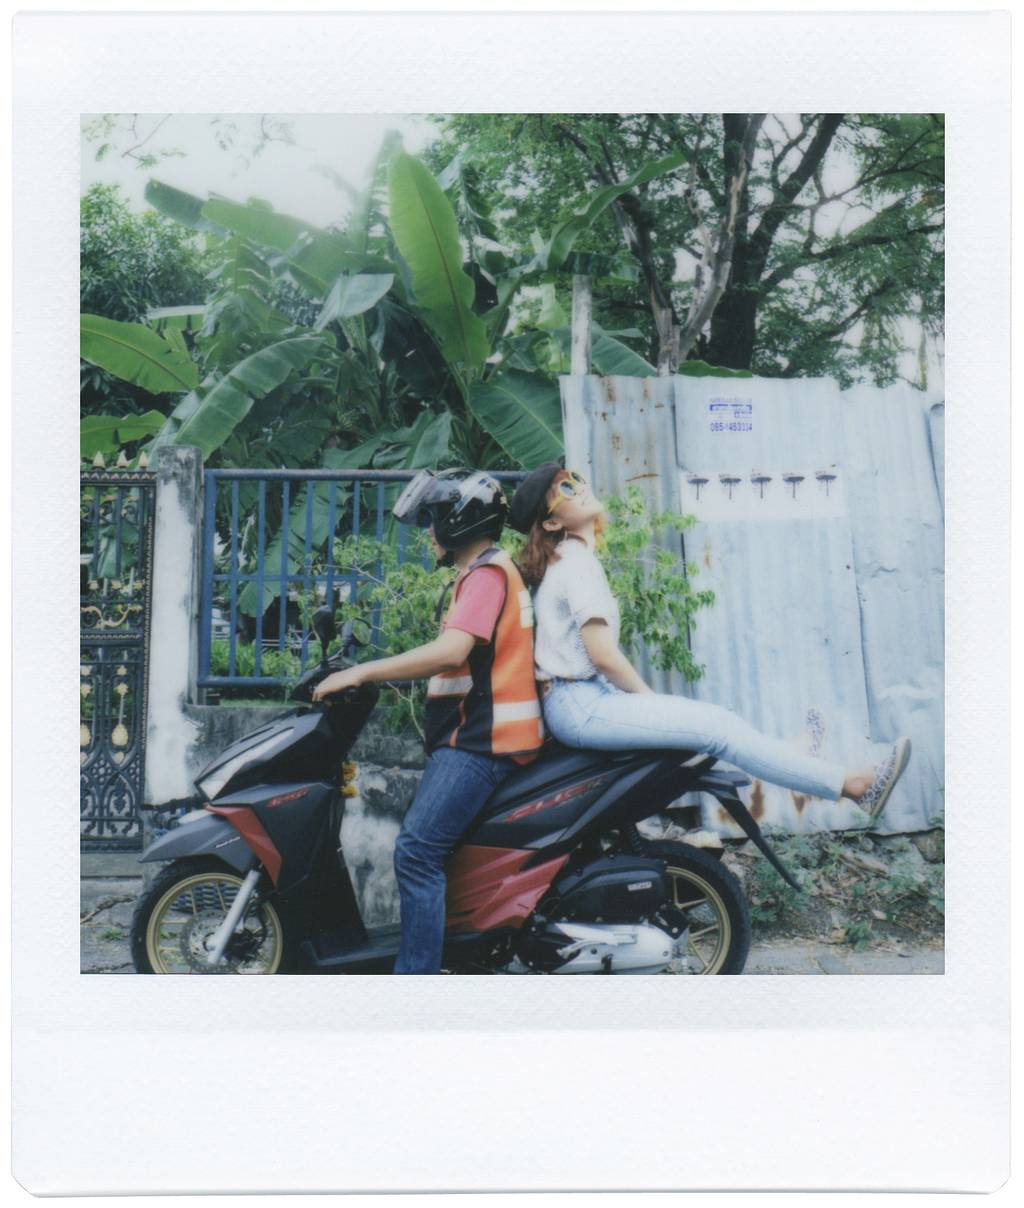 Chasing the Sun: Daytime Adventures with the Lomo'Instant Square